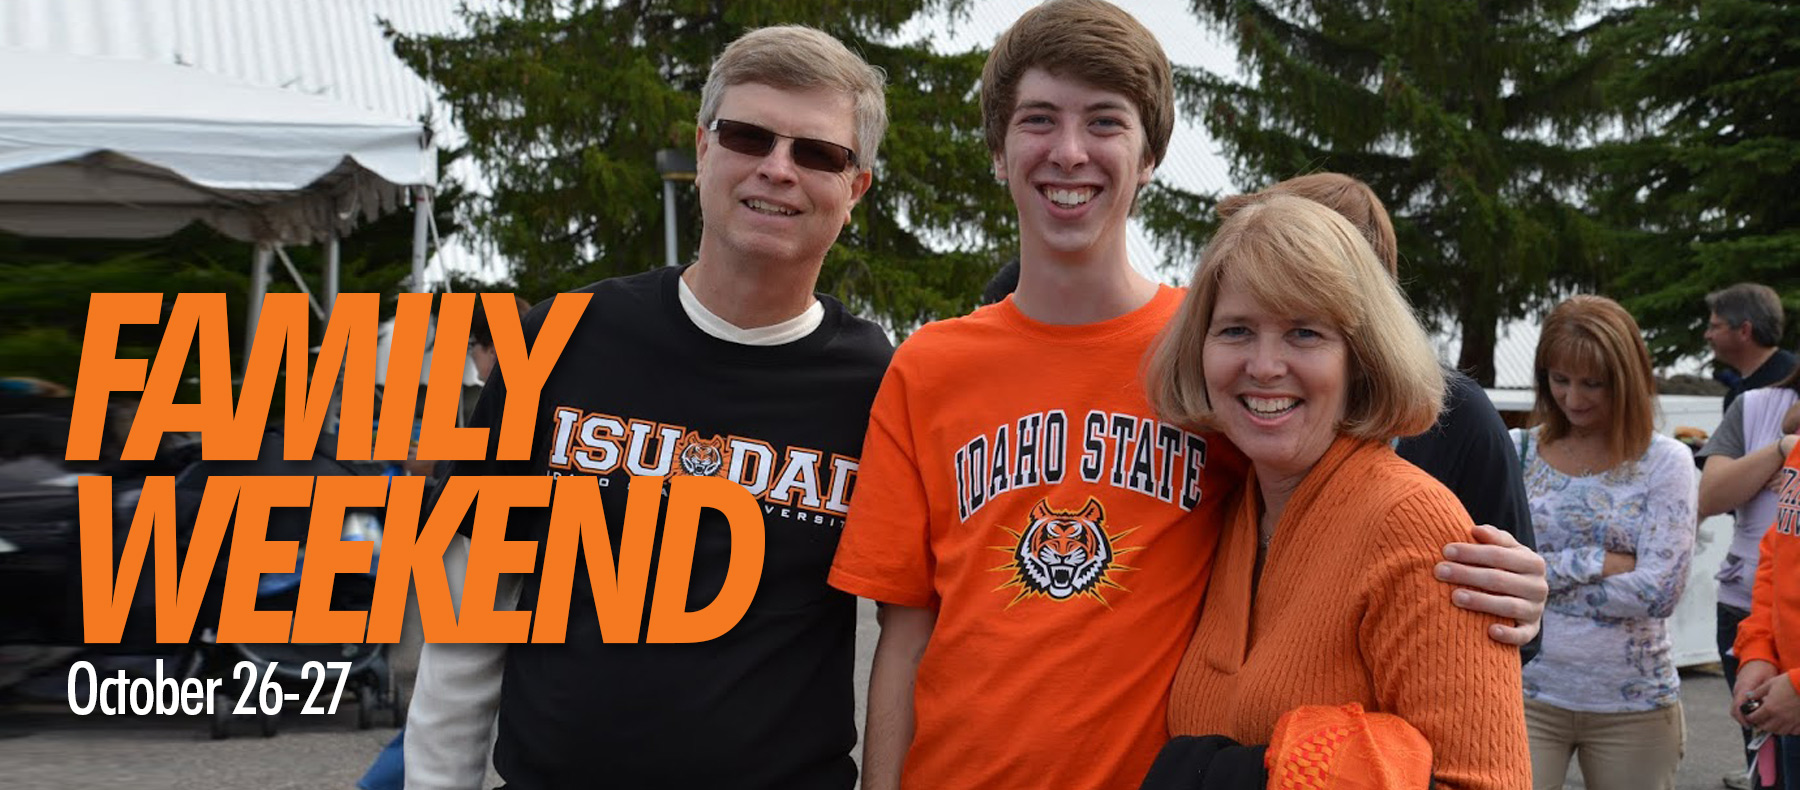 Family Weekend Oct. 26-27